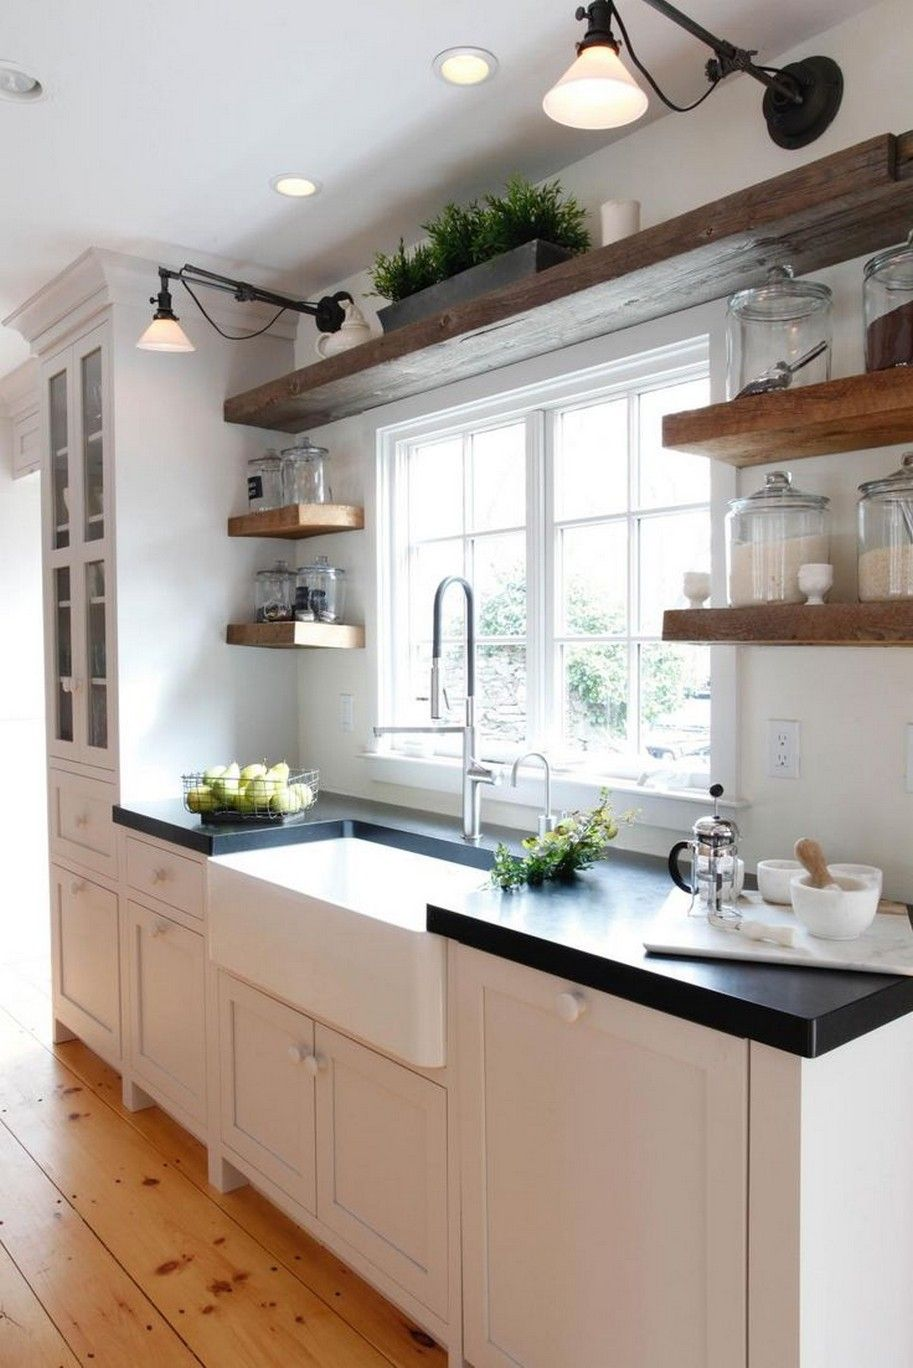 Advice For People With Convictions Looking For Home Insurance Home Designs Kitchen Remodel Small Diy Kitchen Remodel Kitchen Remodel Design